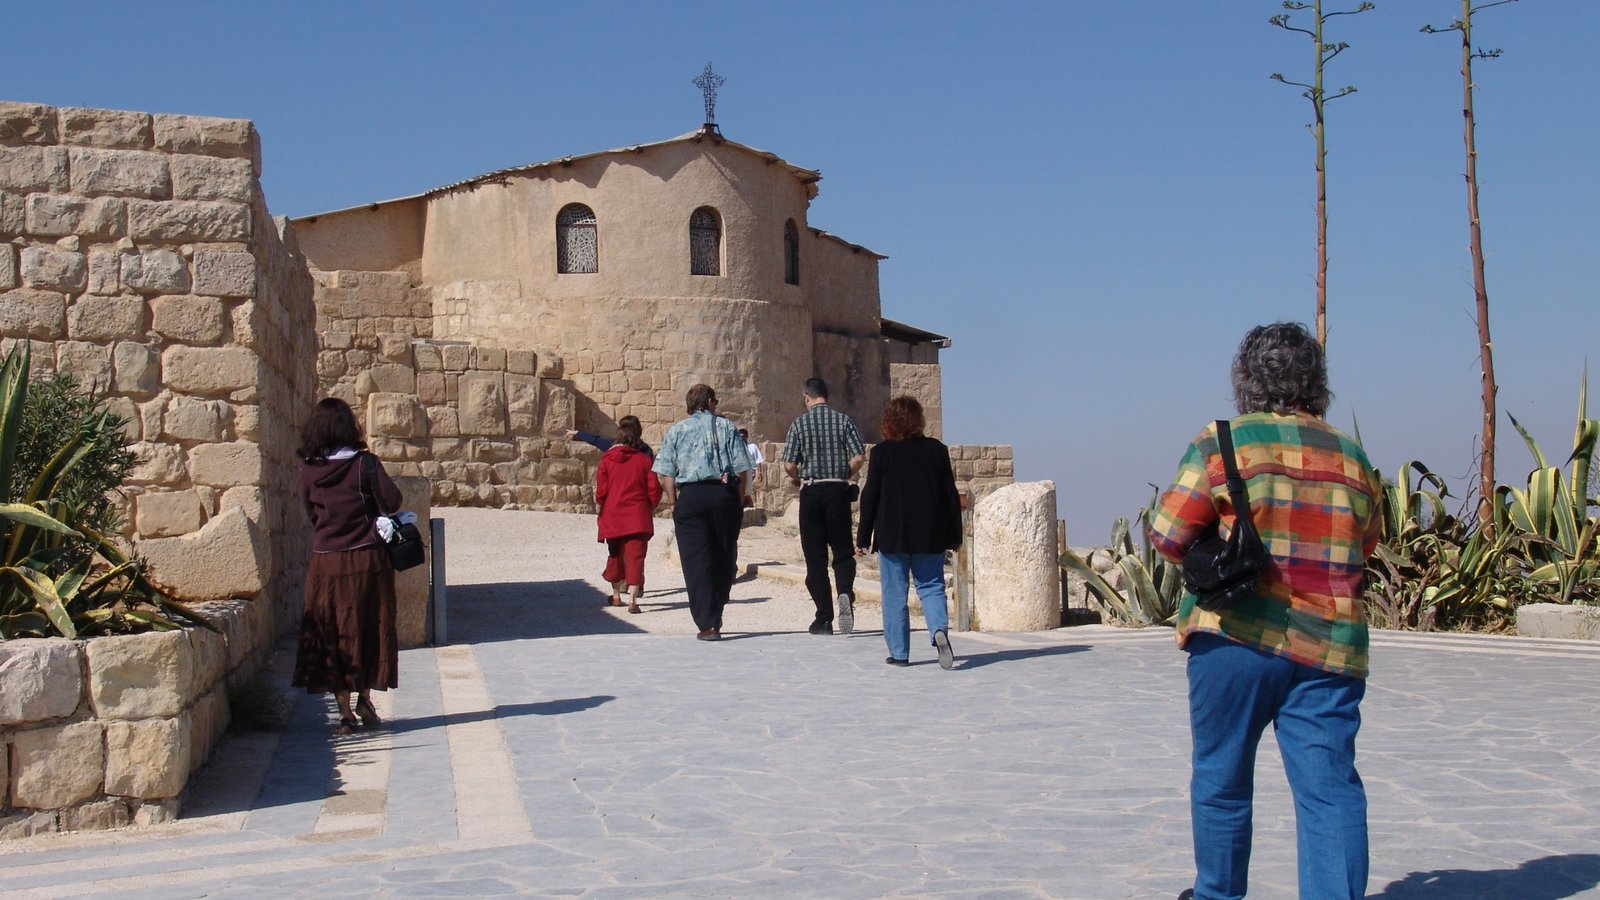 Mount Nebo featuring heritage architecture and religious elements as well as a small group of people